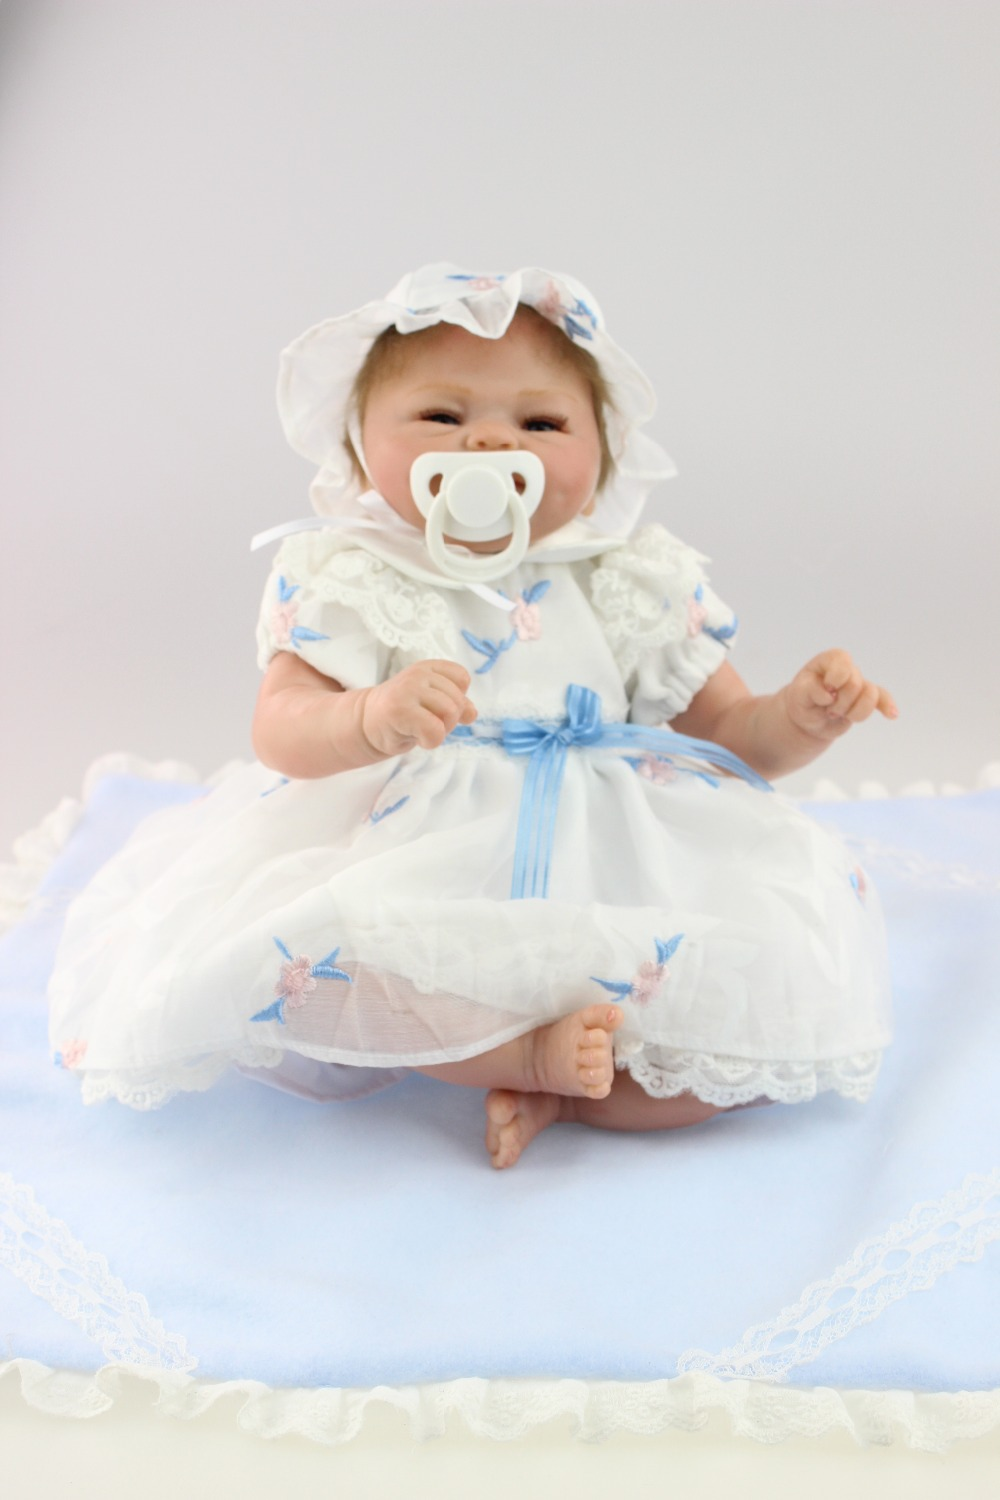 2015 new design  lifelike reborn baby dolls fashion doll silicone vinyl real soft gentle touch for children 17inch new fashion design reborn toddler doll rooted hair soft silicone vinyl real gentle touch 28inches fashion gift for birthday